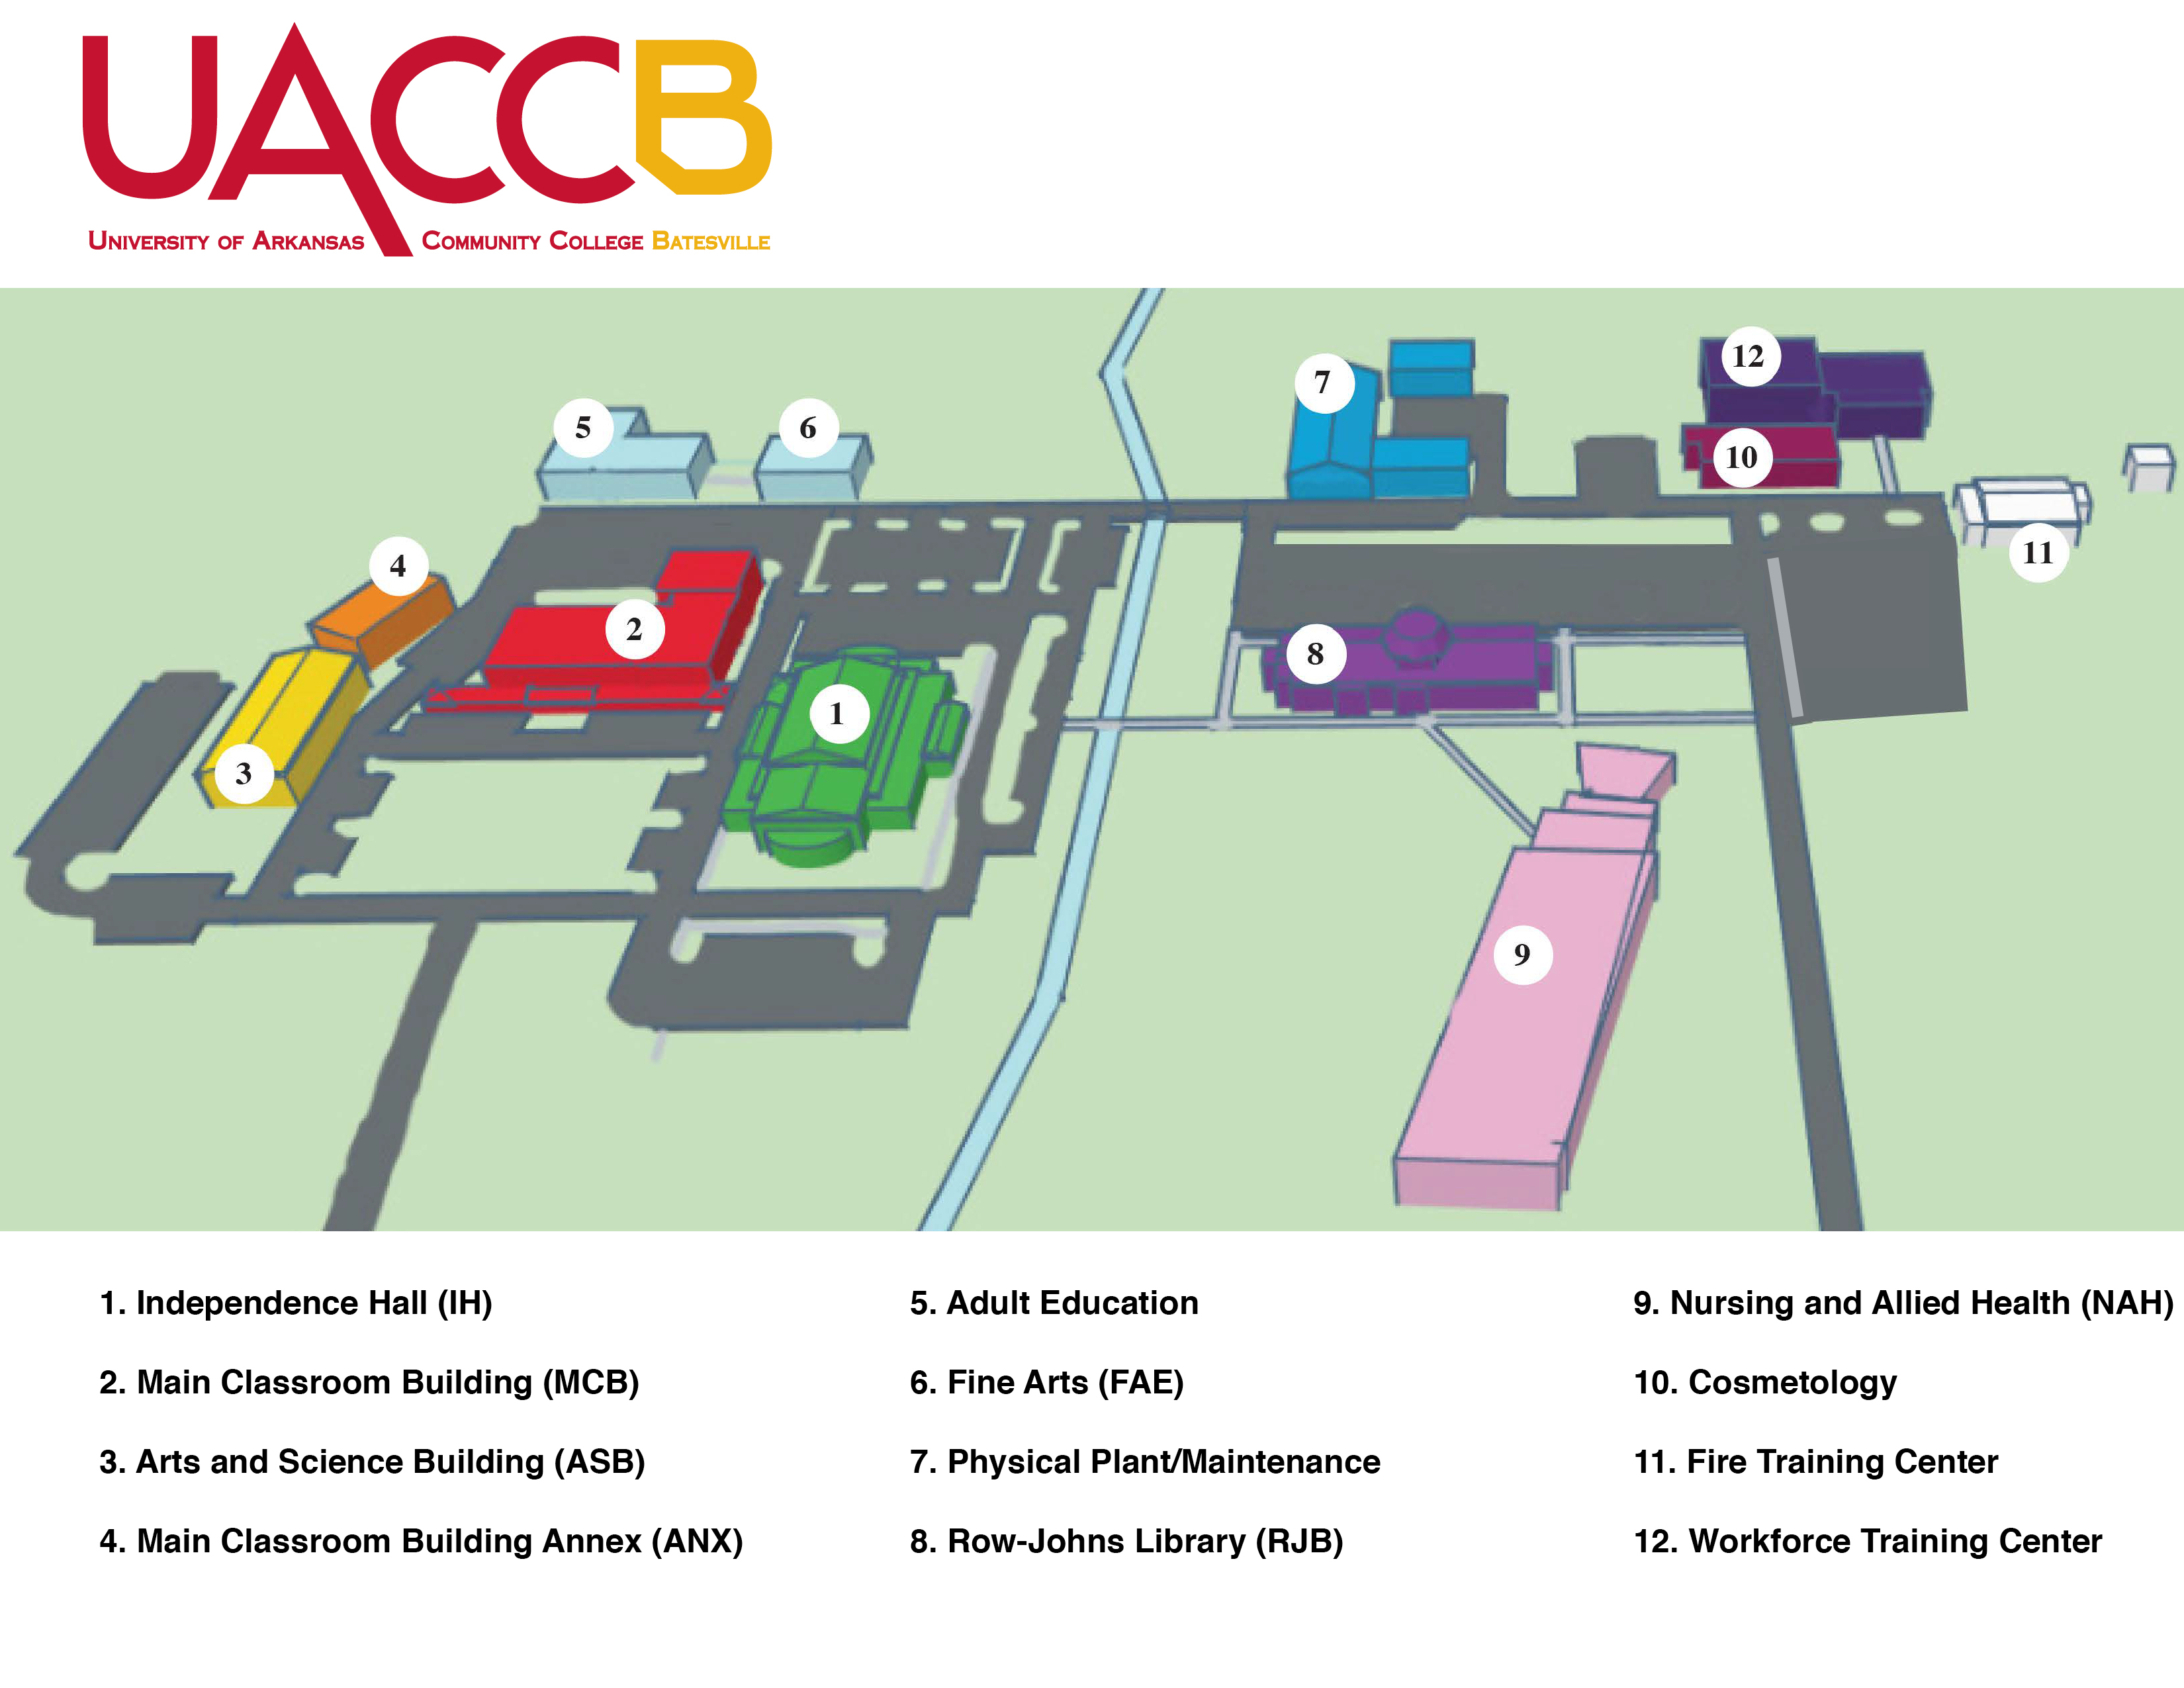 UACCB campus map